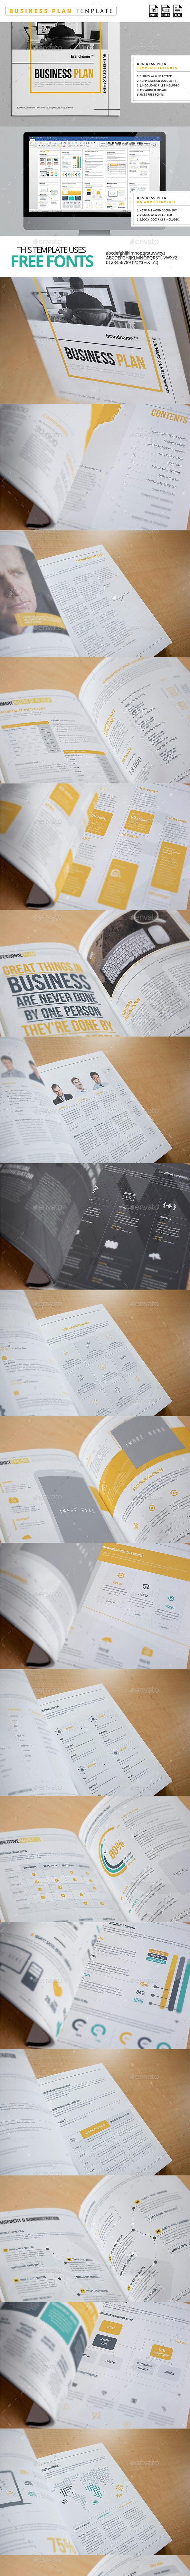 40 Pages Business Plan Template A4 / US Letter - Proposals & Invoices Stationery